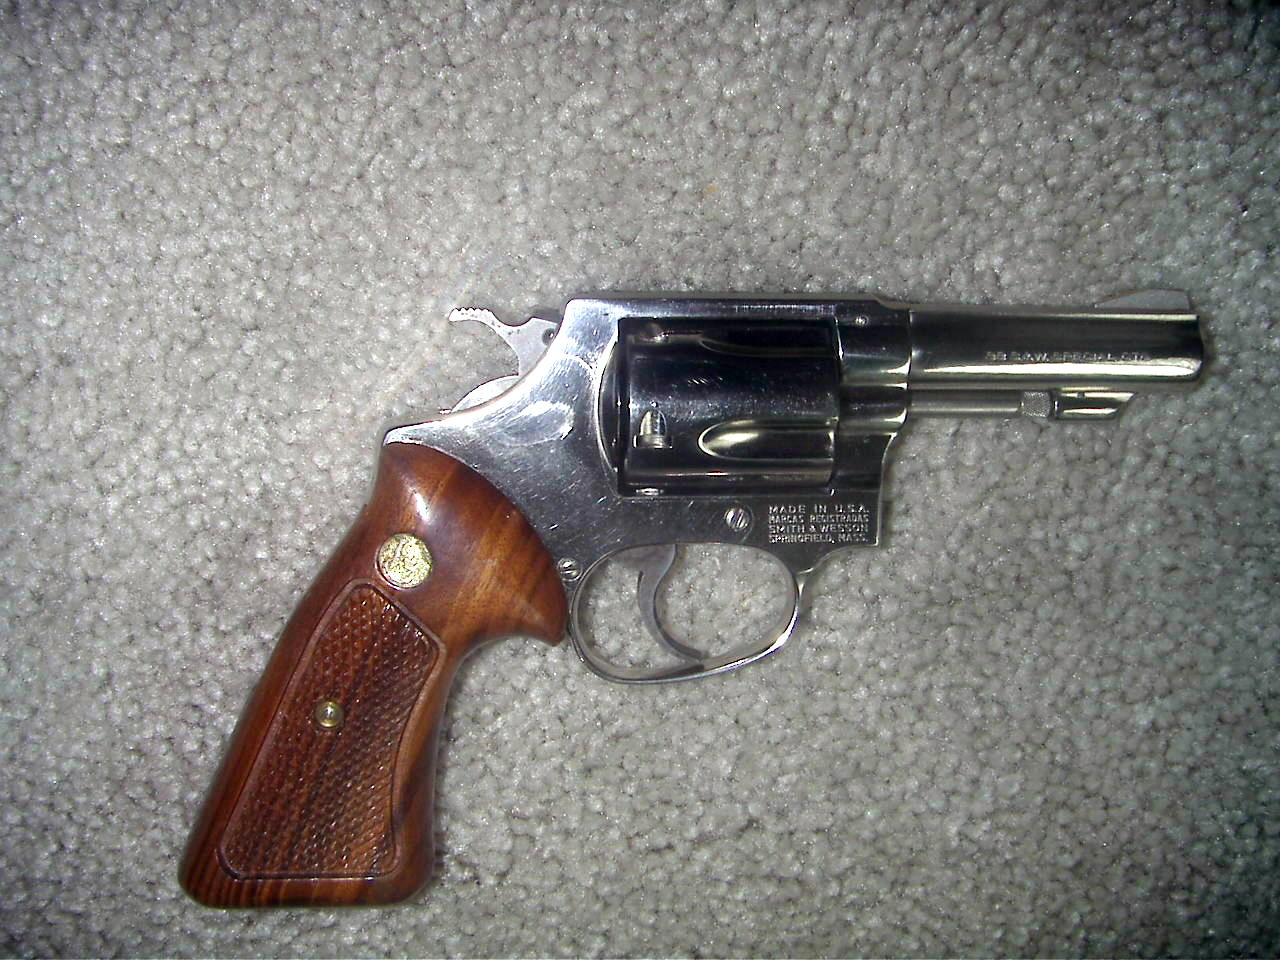 """Just brought home a S&W Nickel 36-1, 3"""" bl, steel frame revolver.-mlna0010-2-.jpg"""